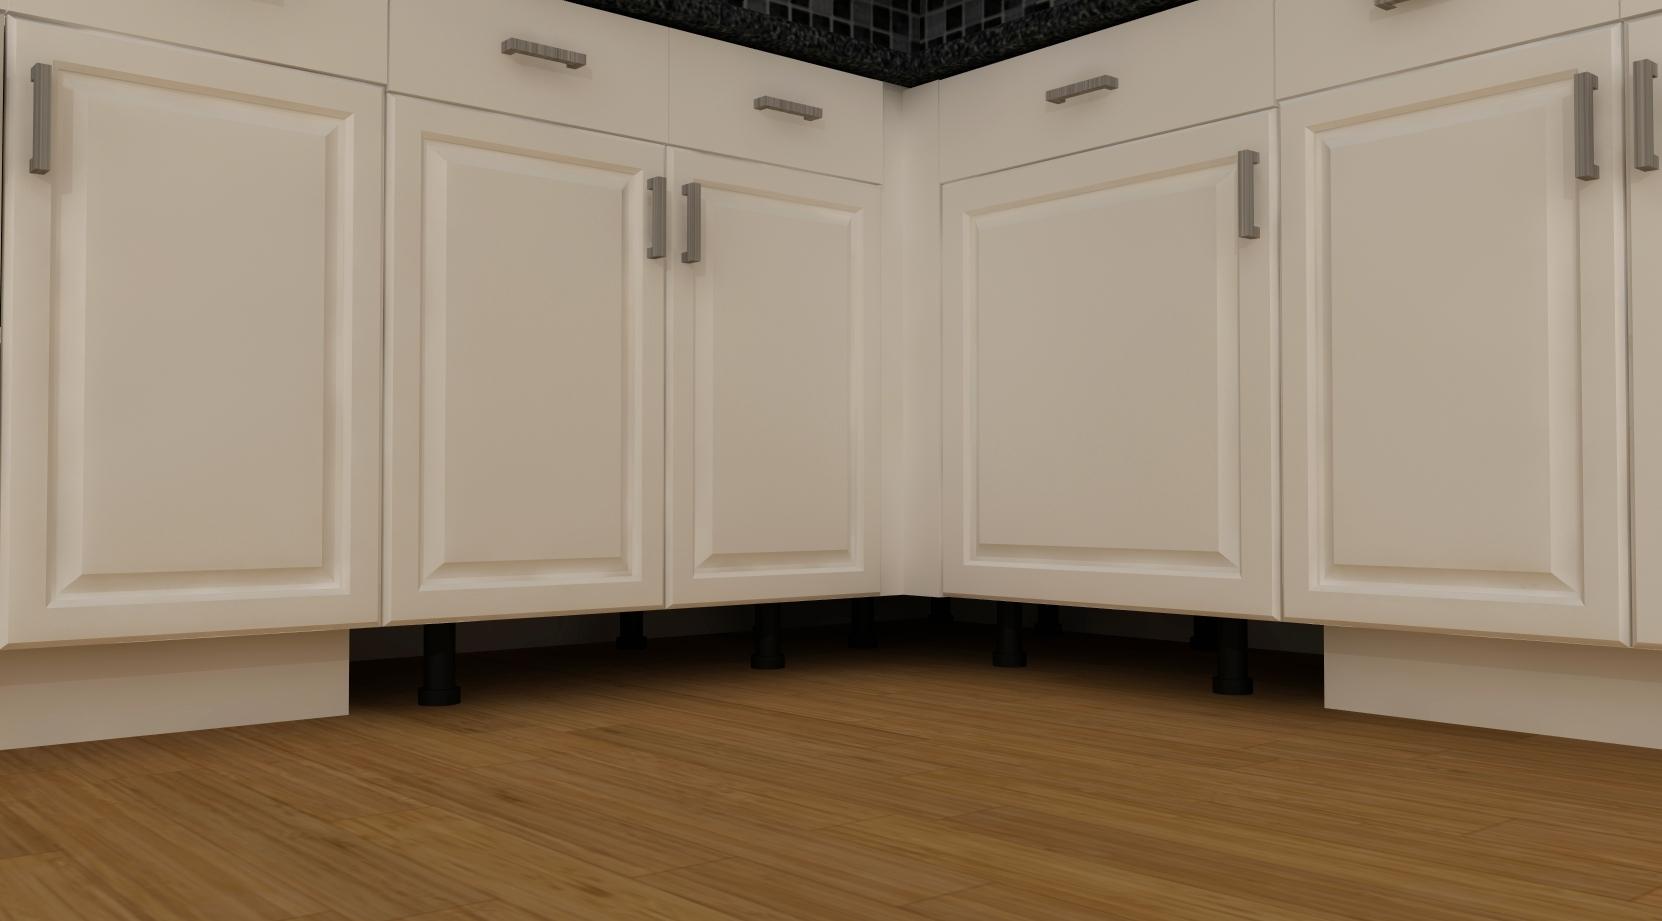 How To Install Lower Kitchen Cabinets tips for installing ikea toe-kicks